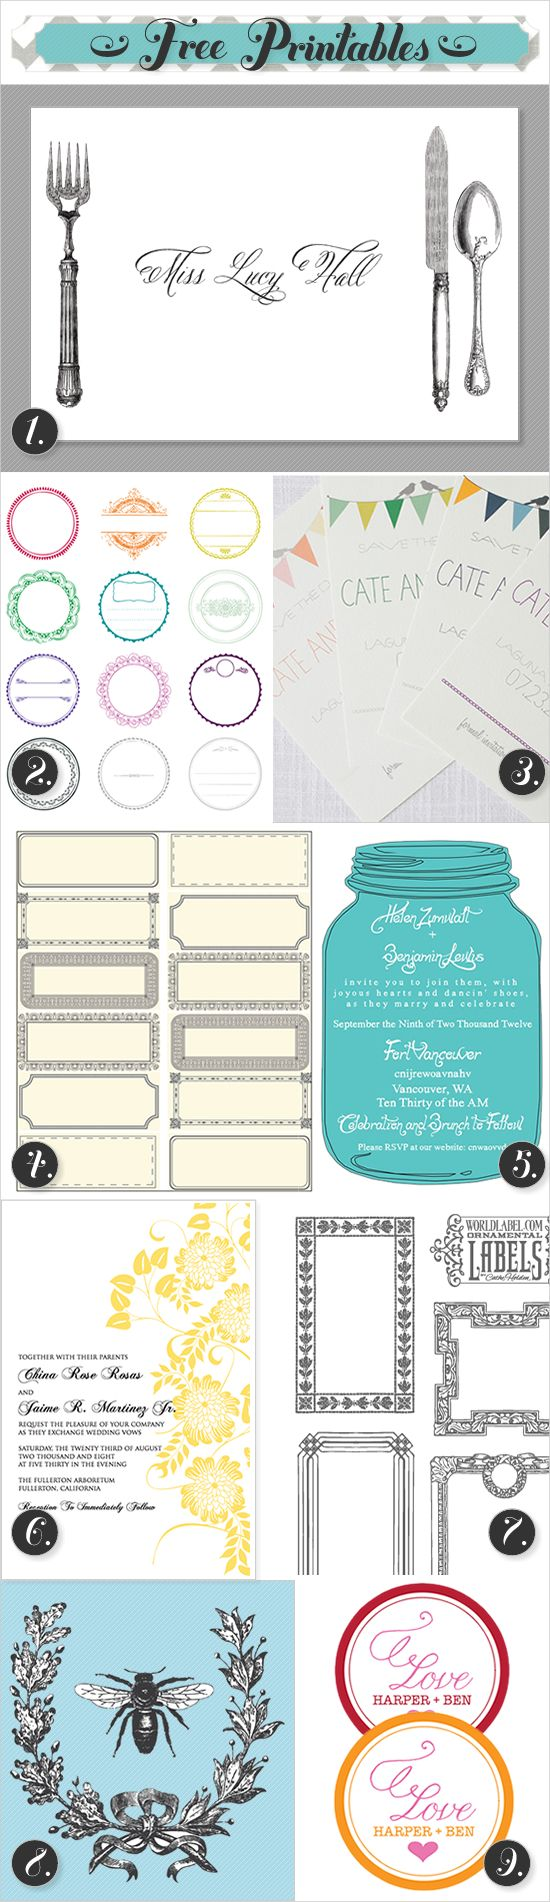 free printable templates - loving the mason jar